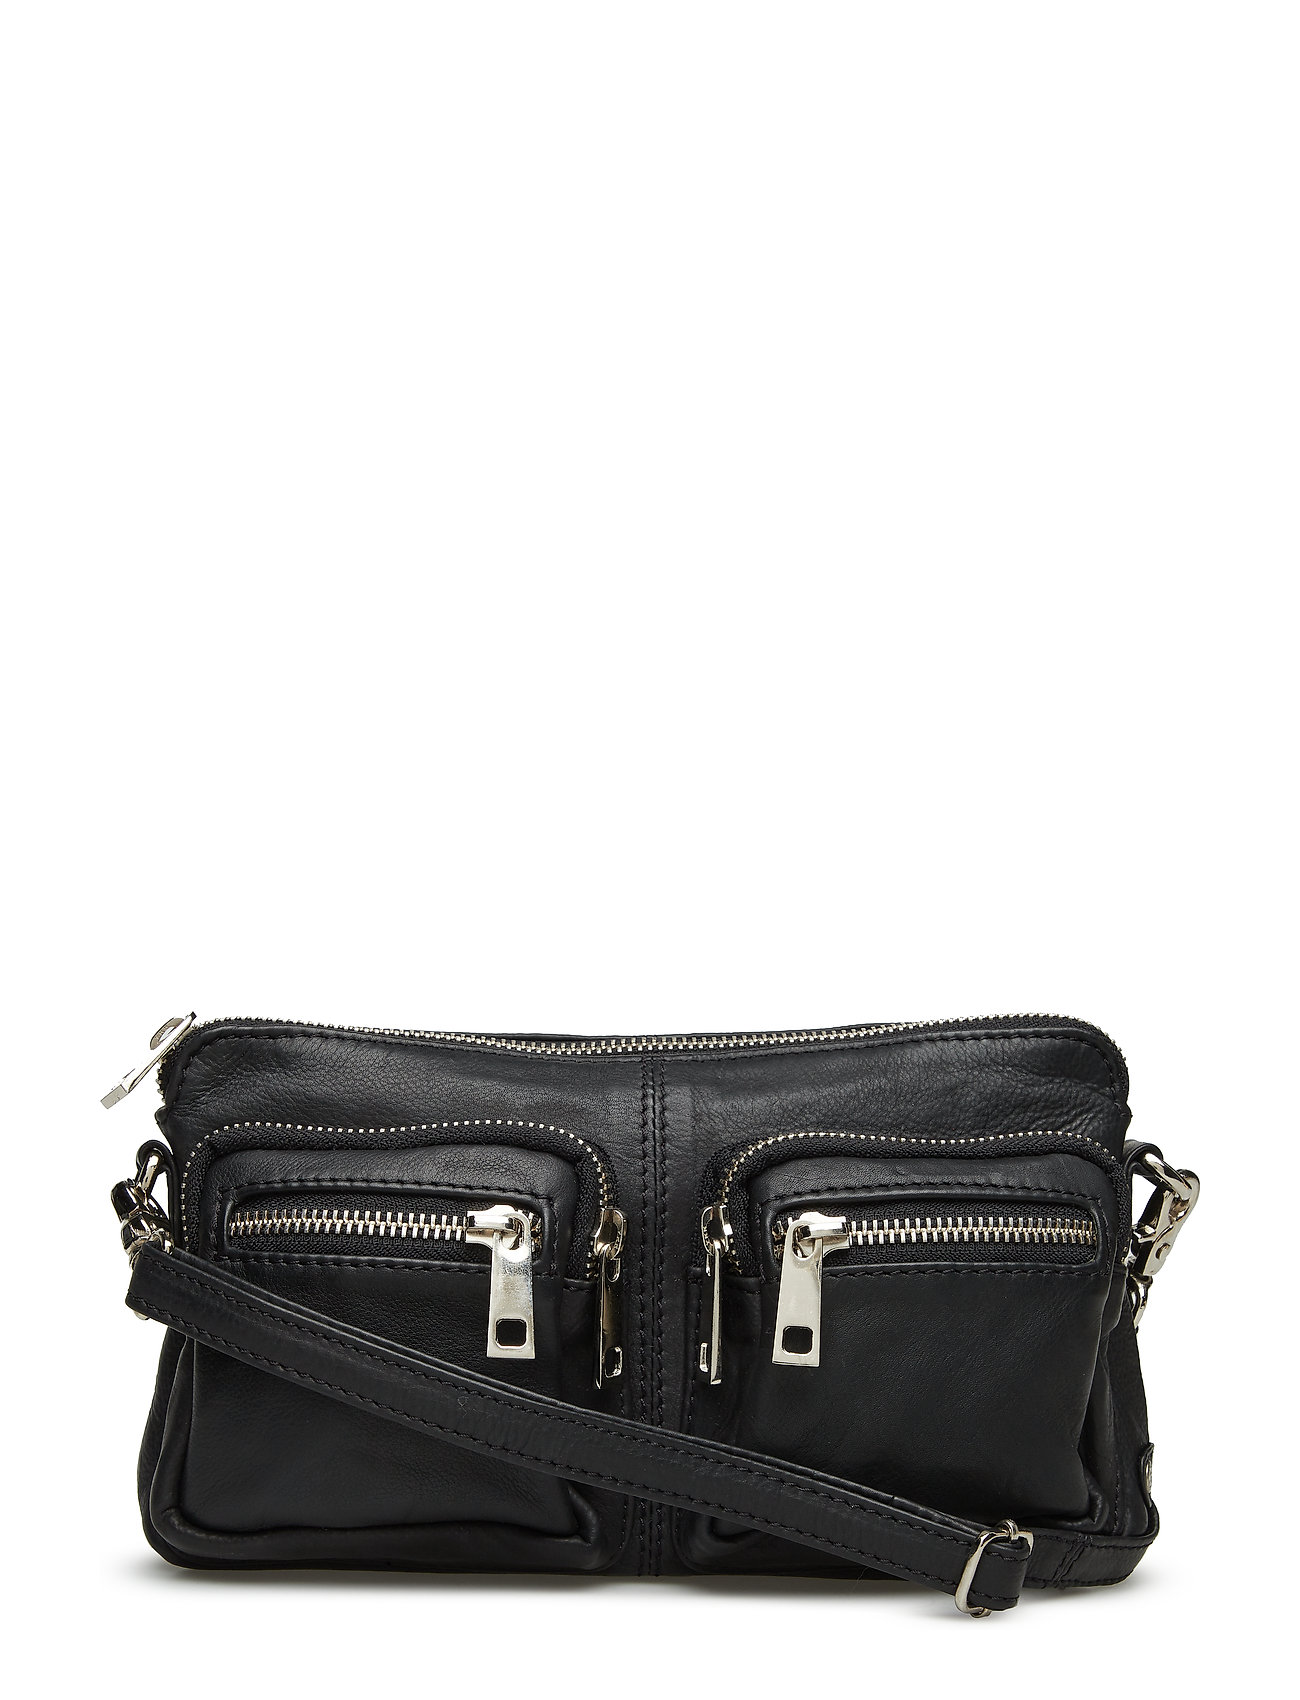 Image of Small Bag / Clutch Bags Small Shoulder Bags/crossbody Bags Sort DEPECHE (3110522835)